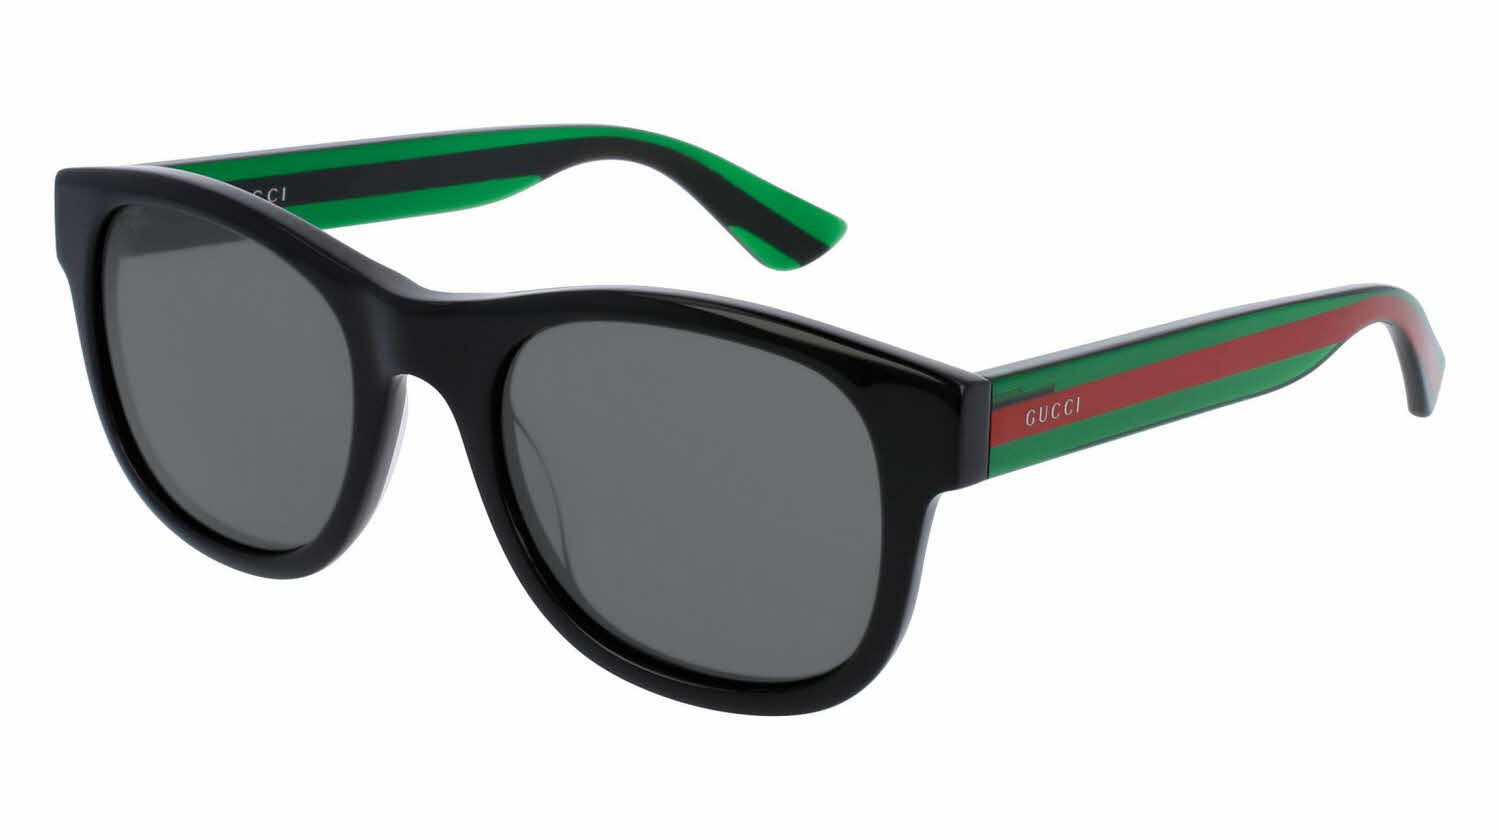 Gucci GG0003S Prescription Sunglasses